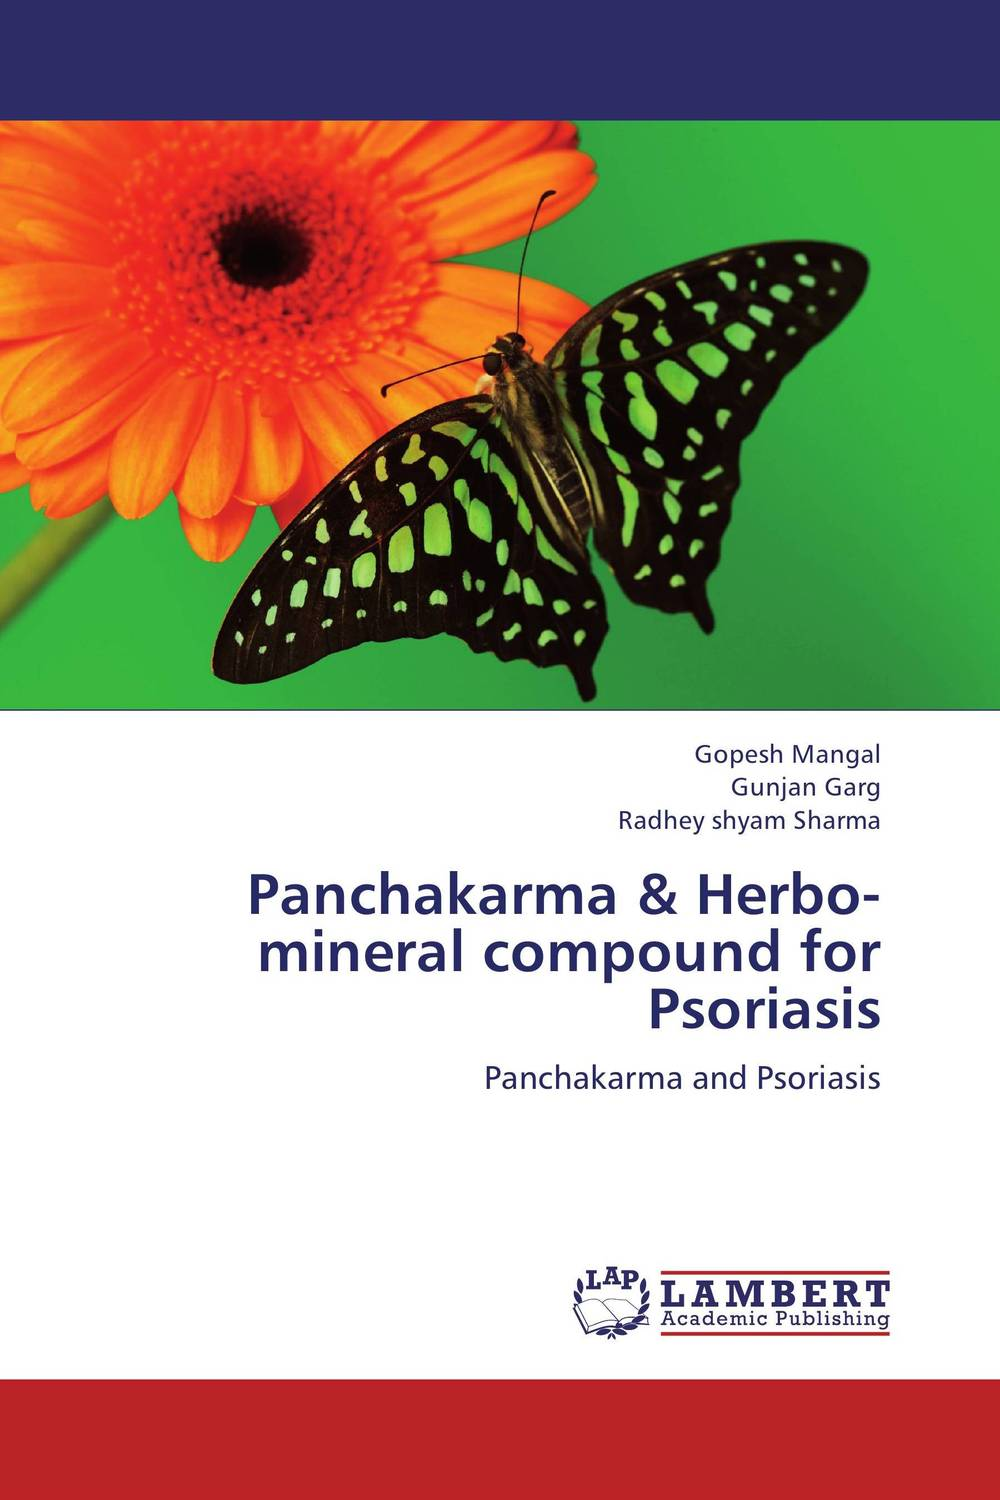 Panchakarma & Herbo-mineral compound for Psoriasis